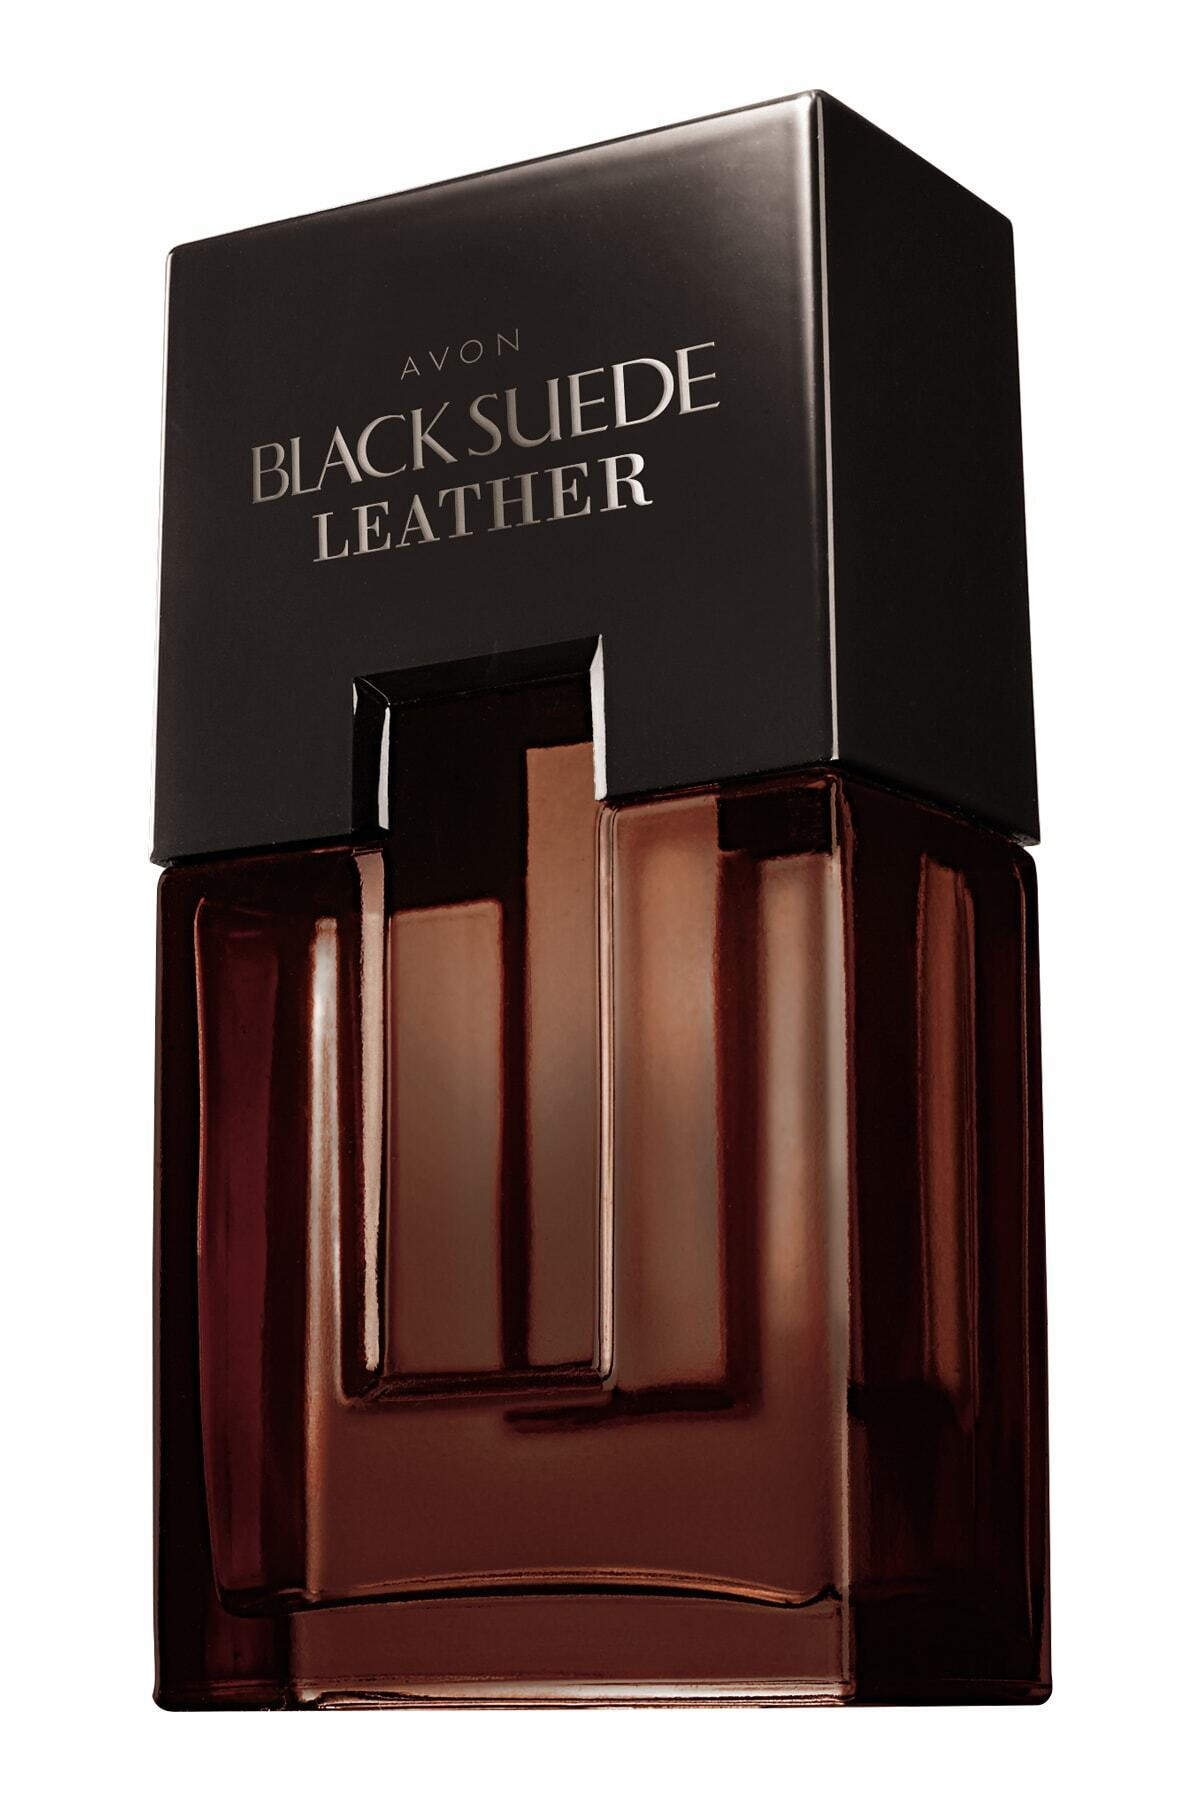 AVON Black Suede Leather Erkek Parfüm Edt 75 ml 5050136088415 1